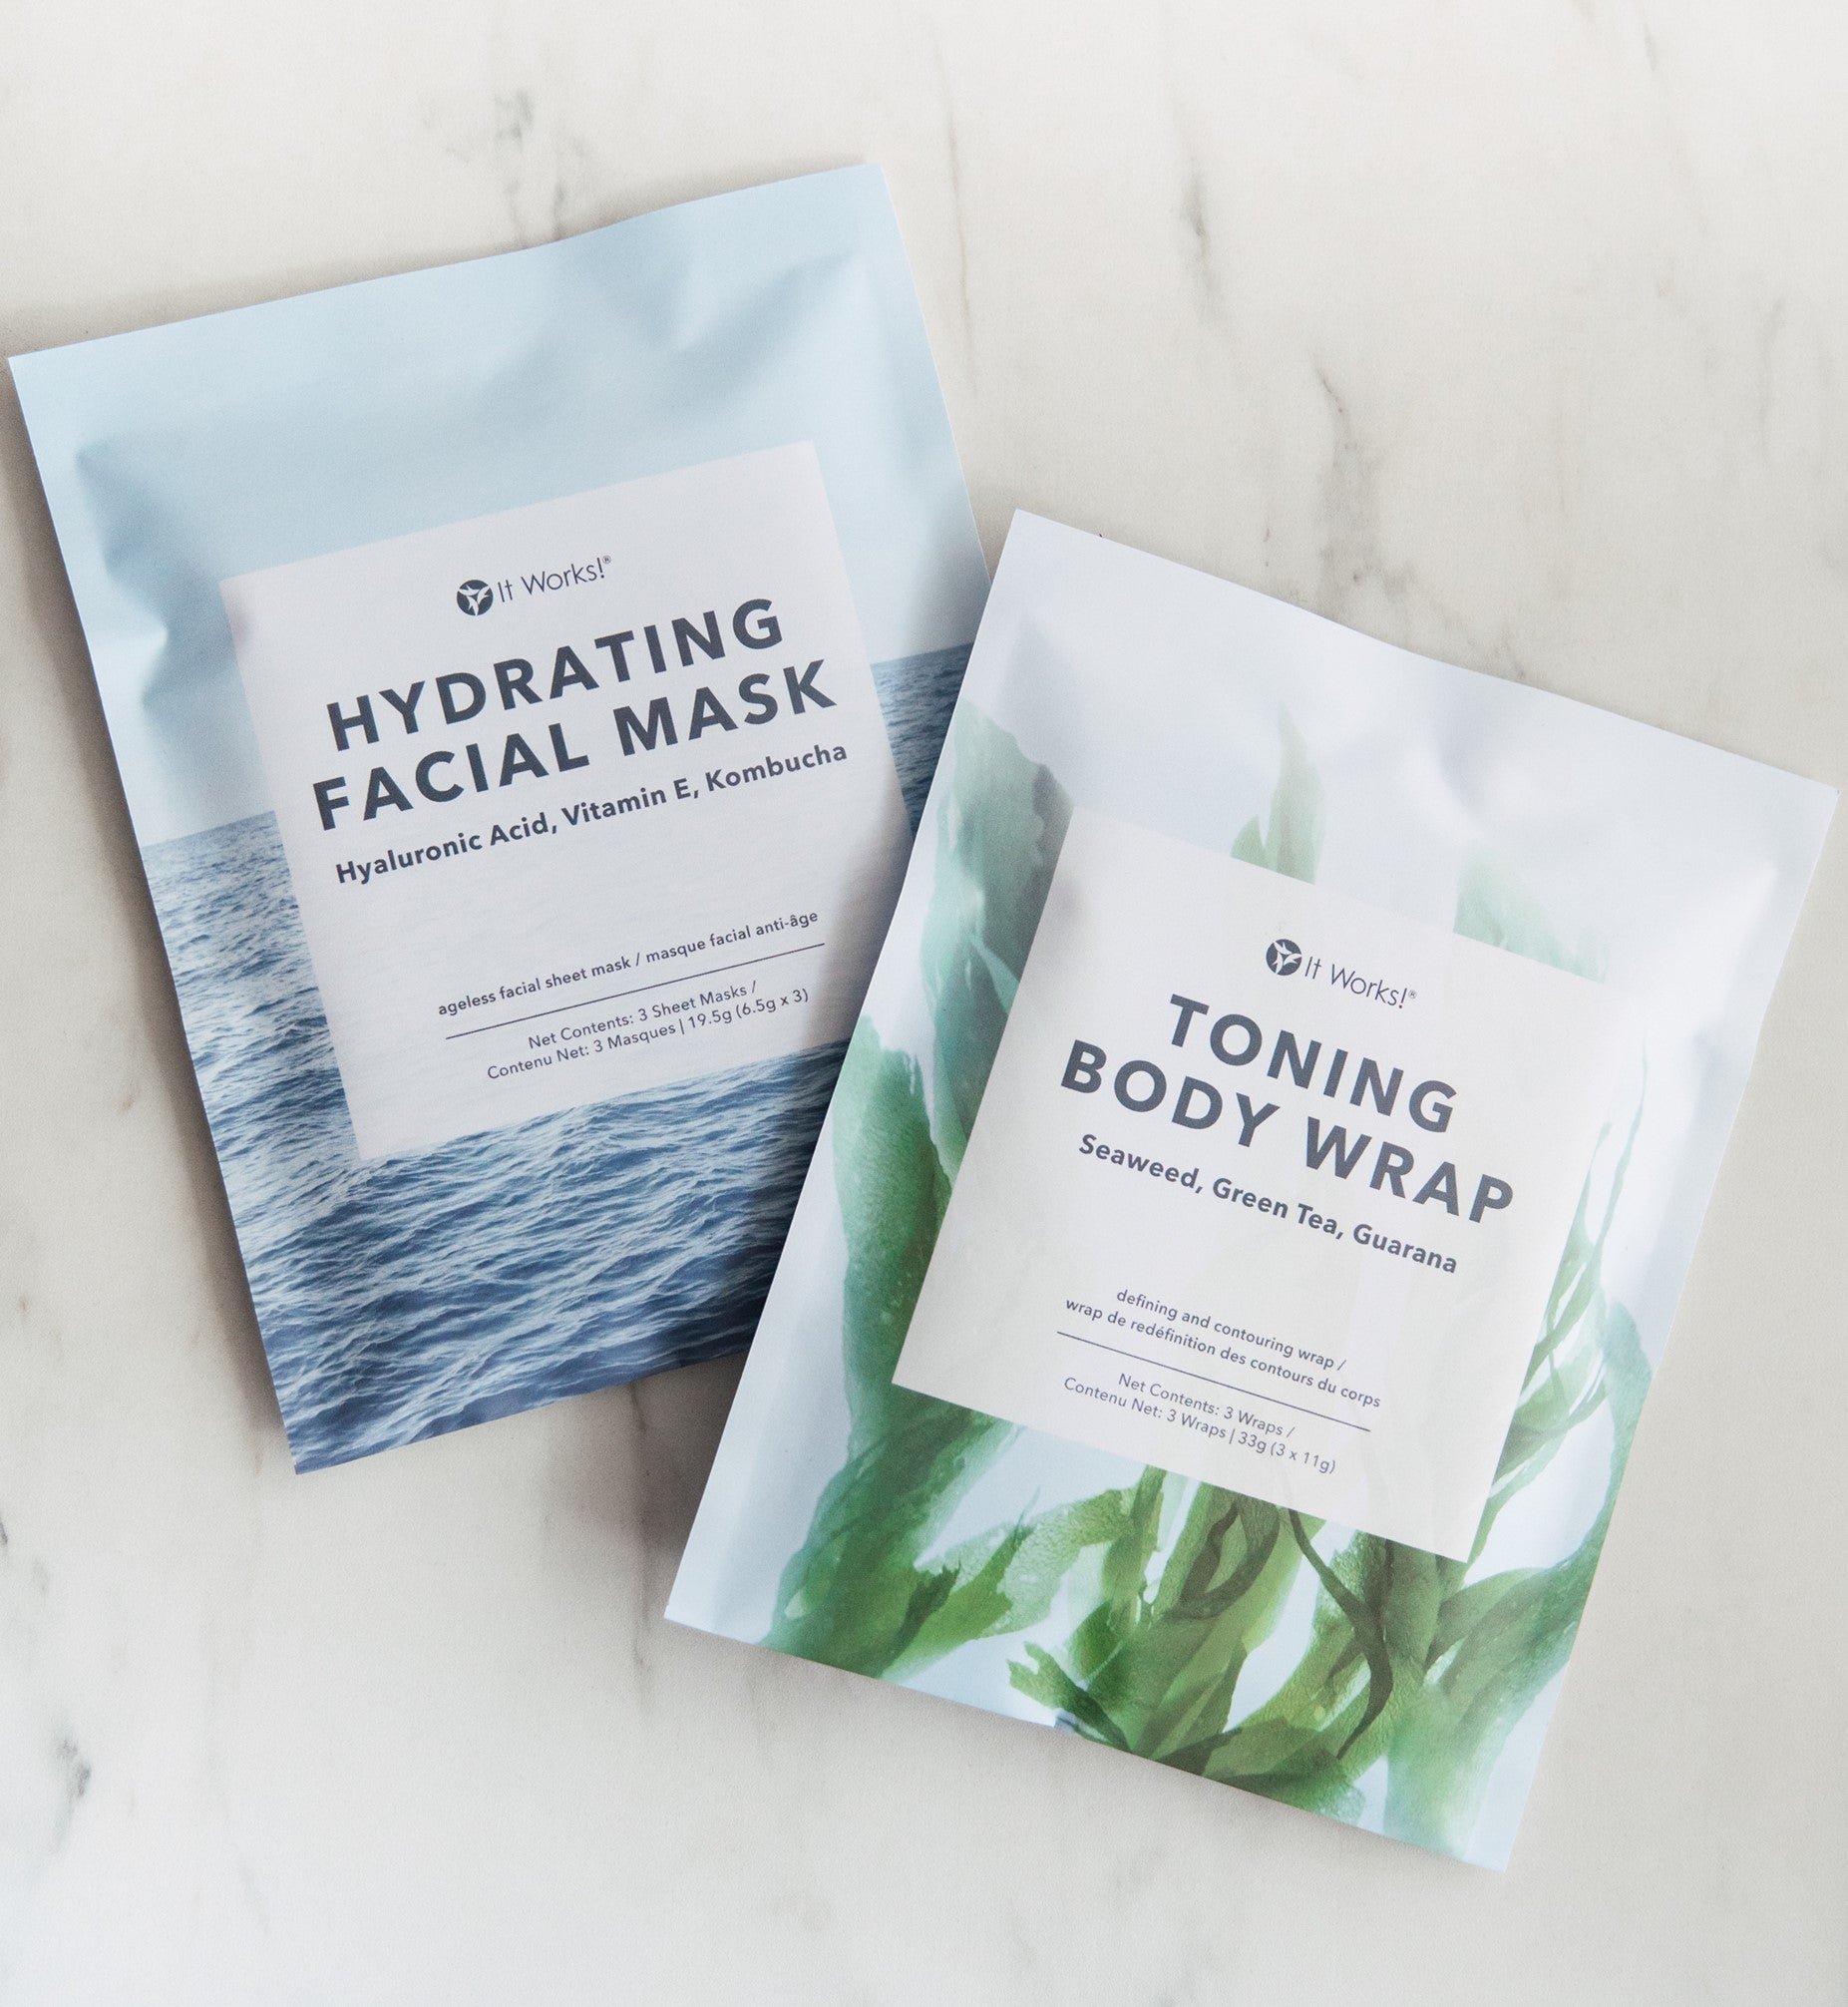 Skinny Wraps and Hydrating Facial Wraps  -- NEW Product